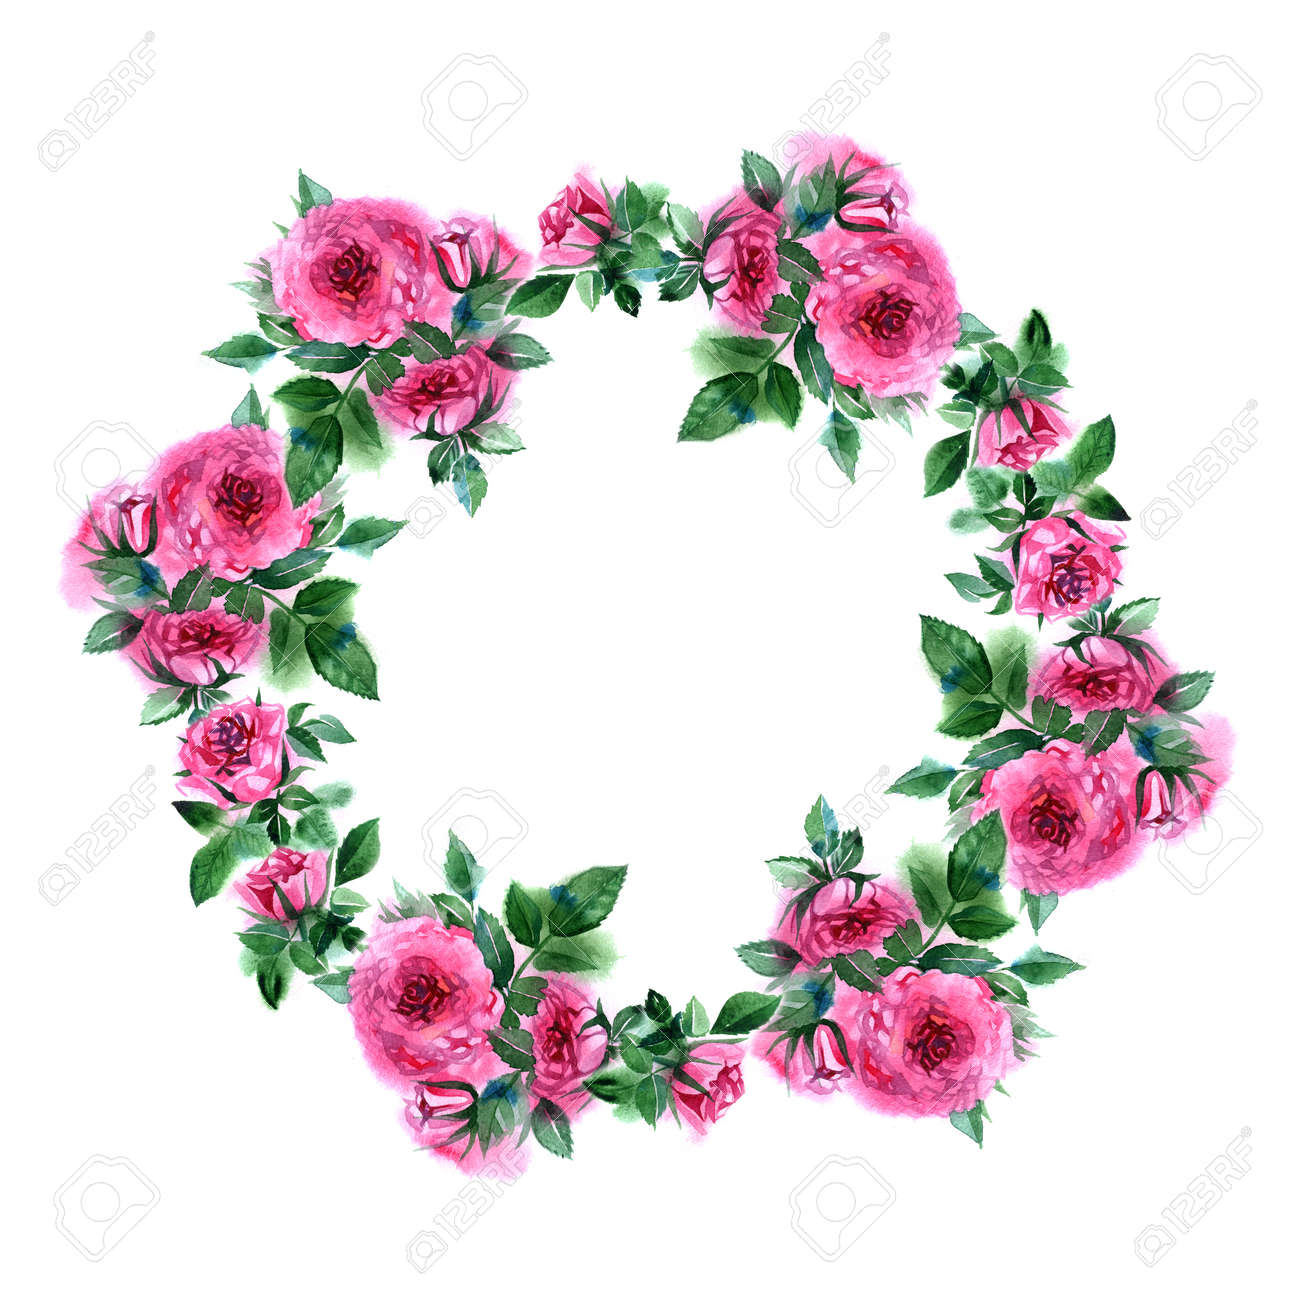 Rose Flower Wreath Floral Circle Border Watercolor Frame On White Background Stock Photo